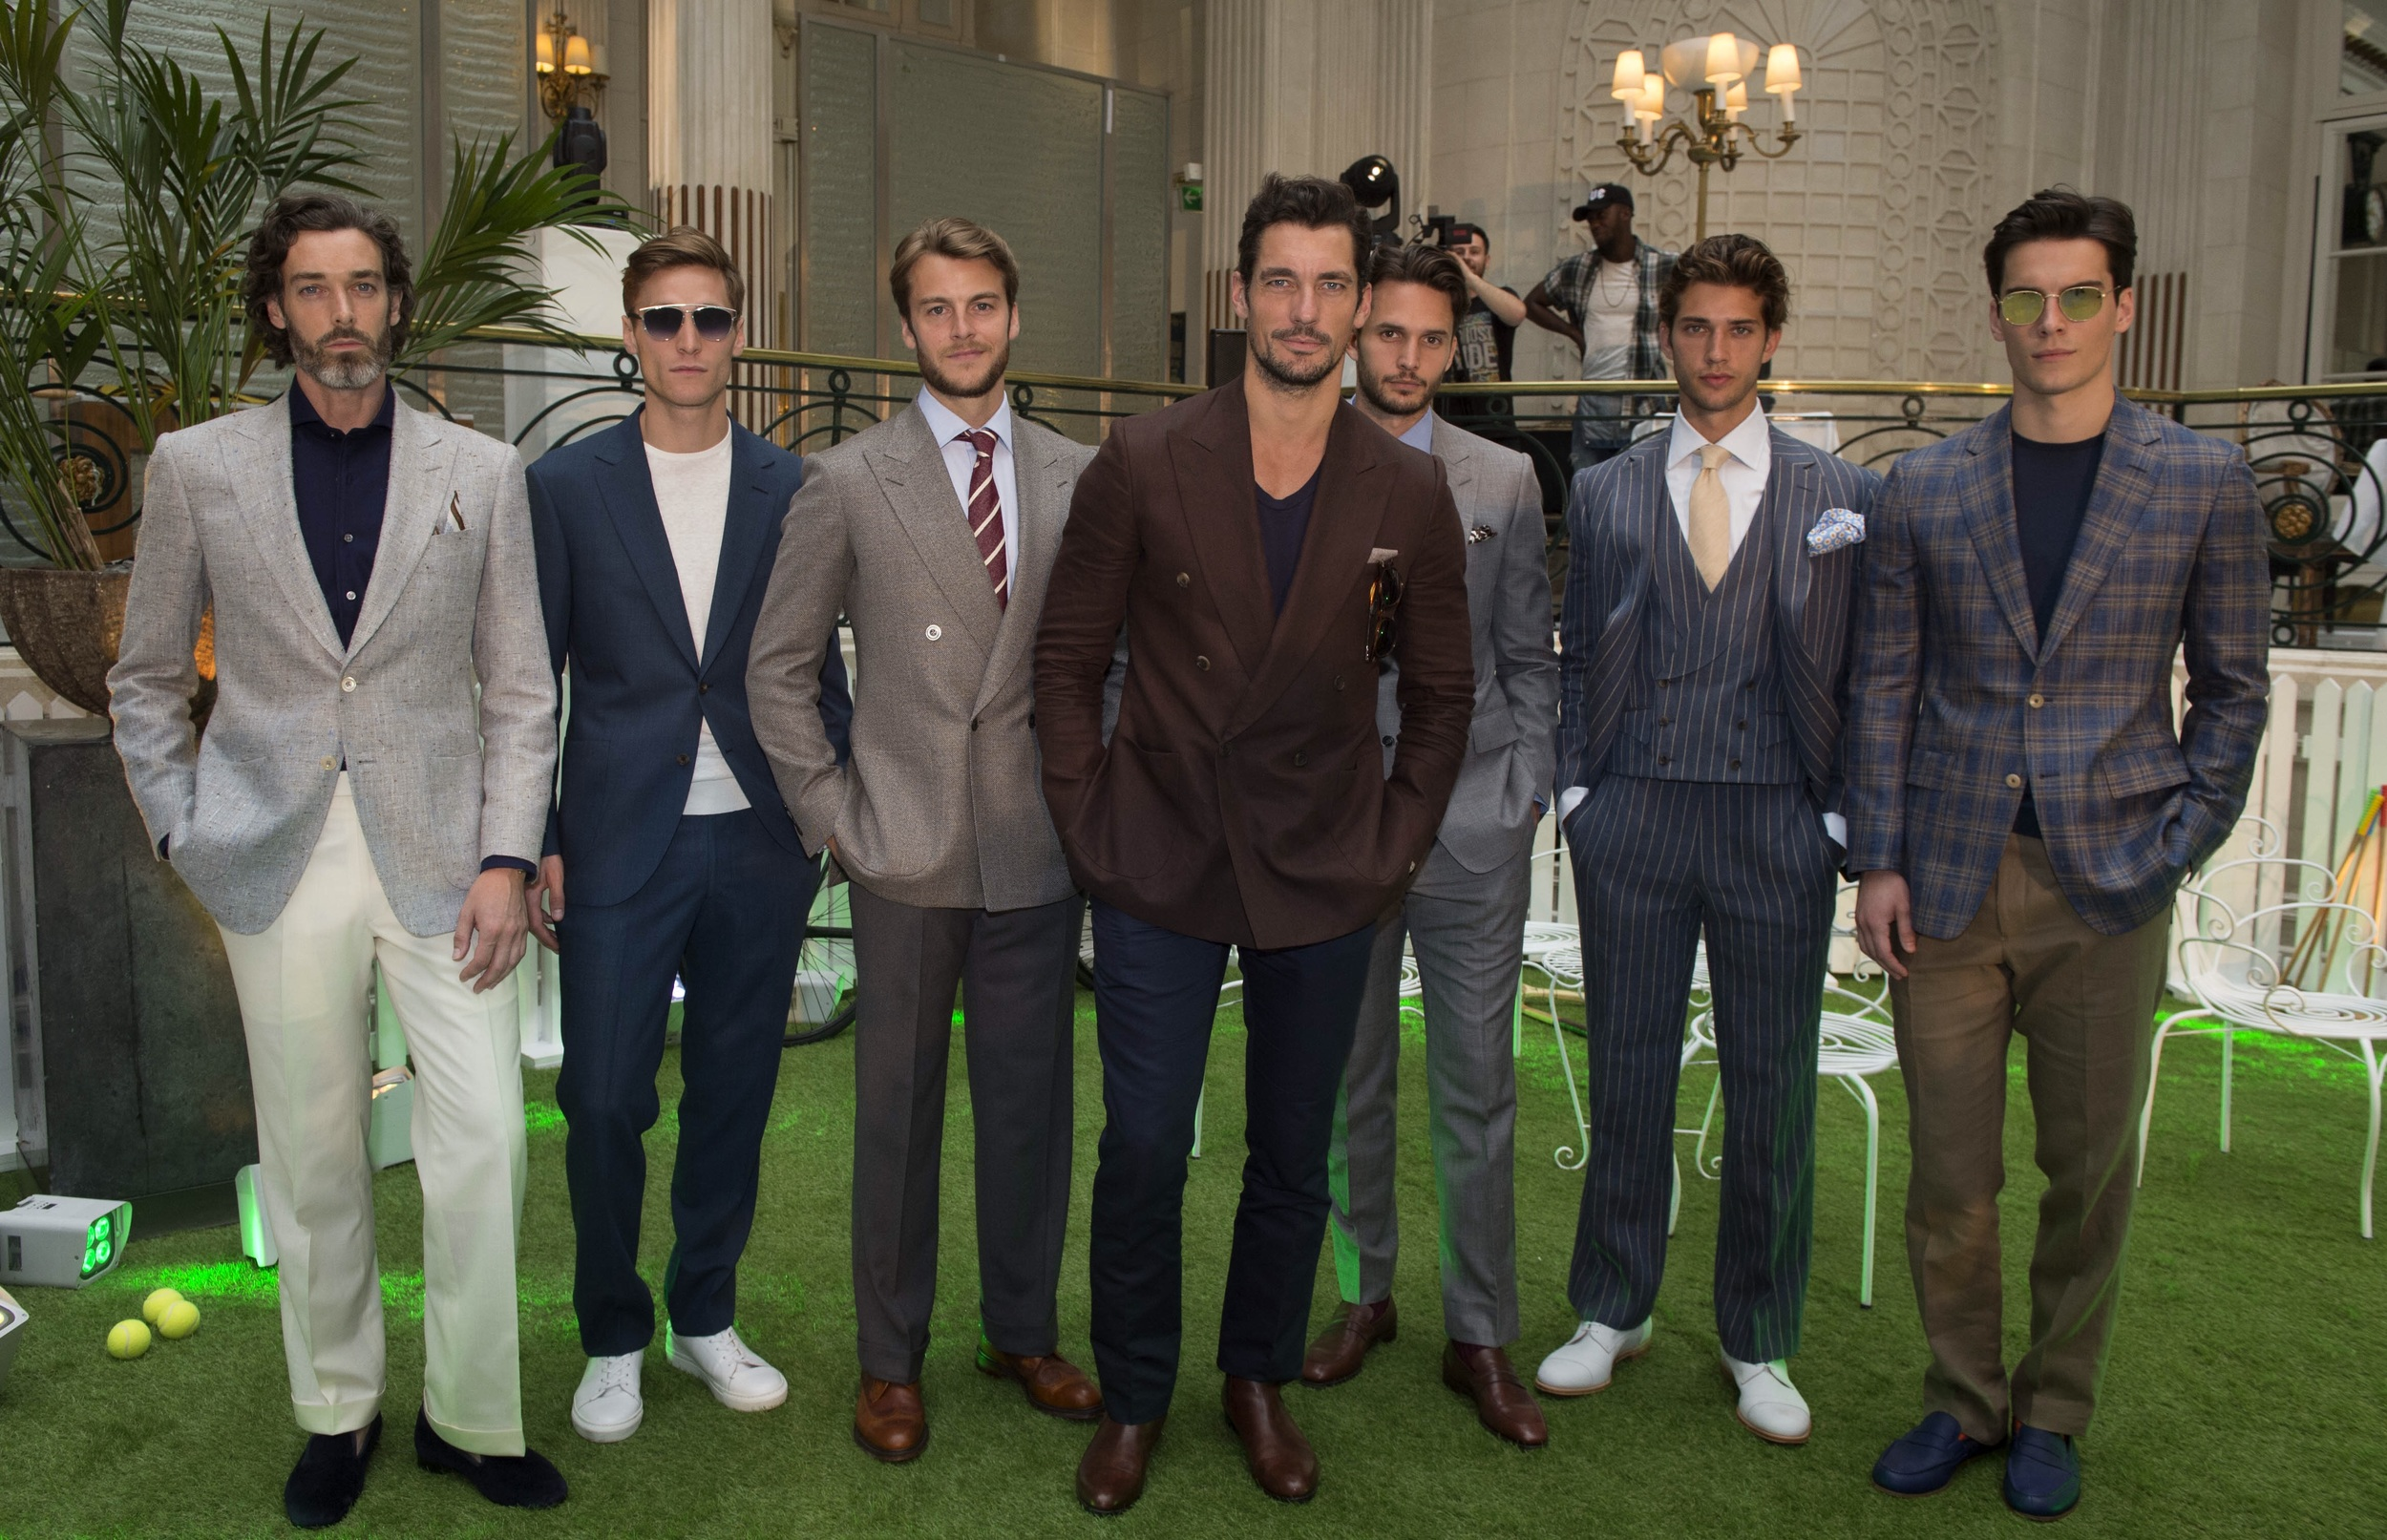 David Gandy - the perfect example of how to work a traditional jacket.